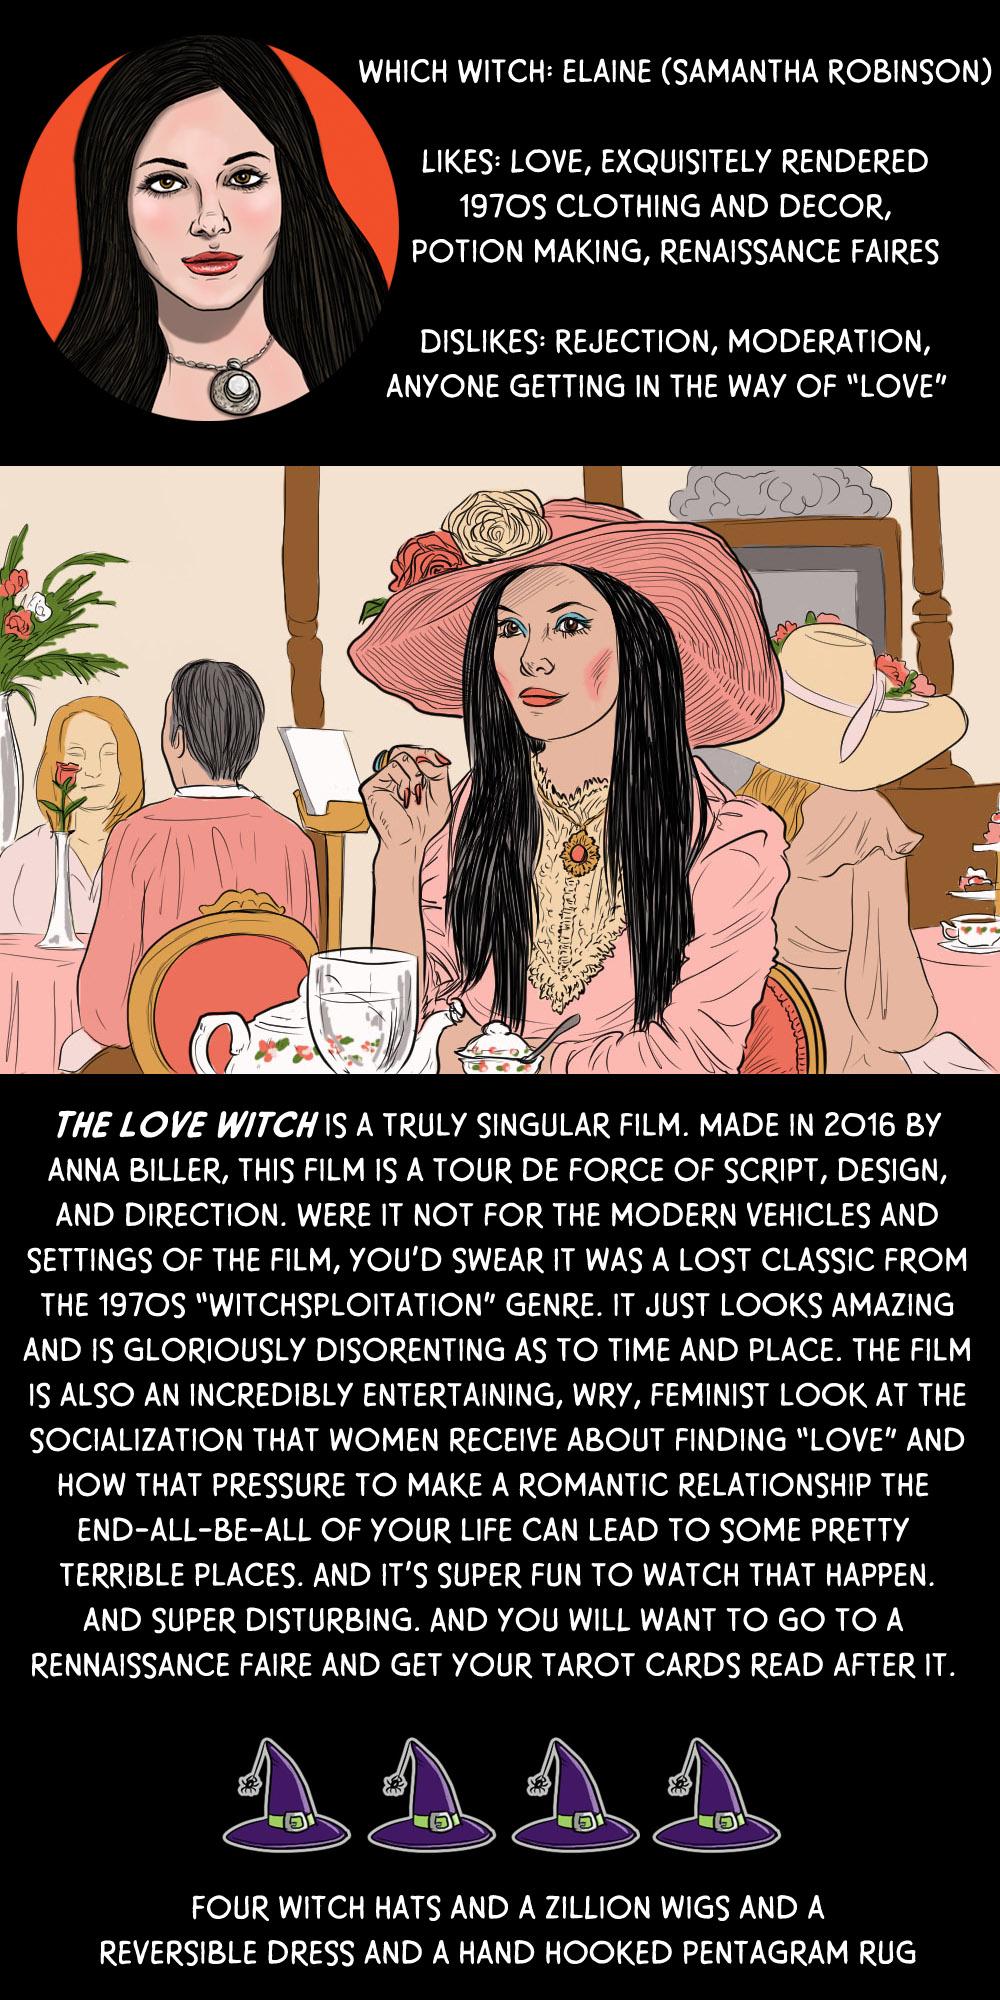 October 6: The Love Witch